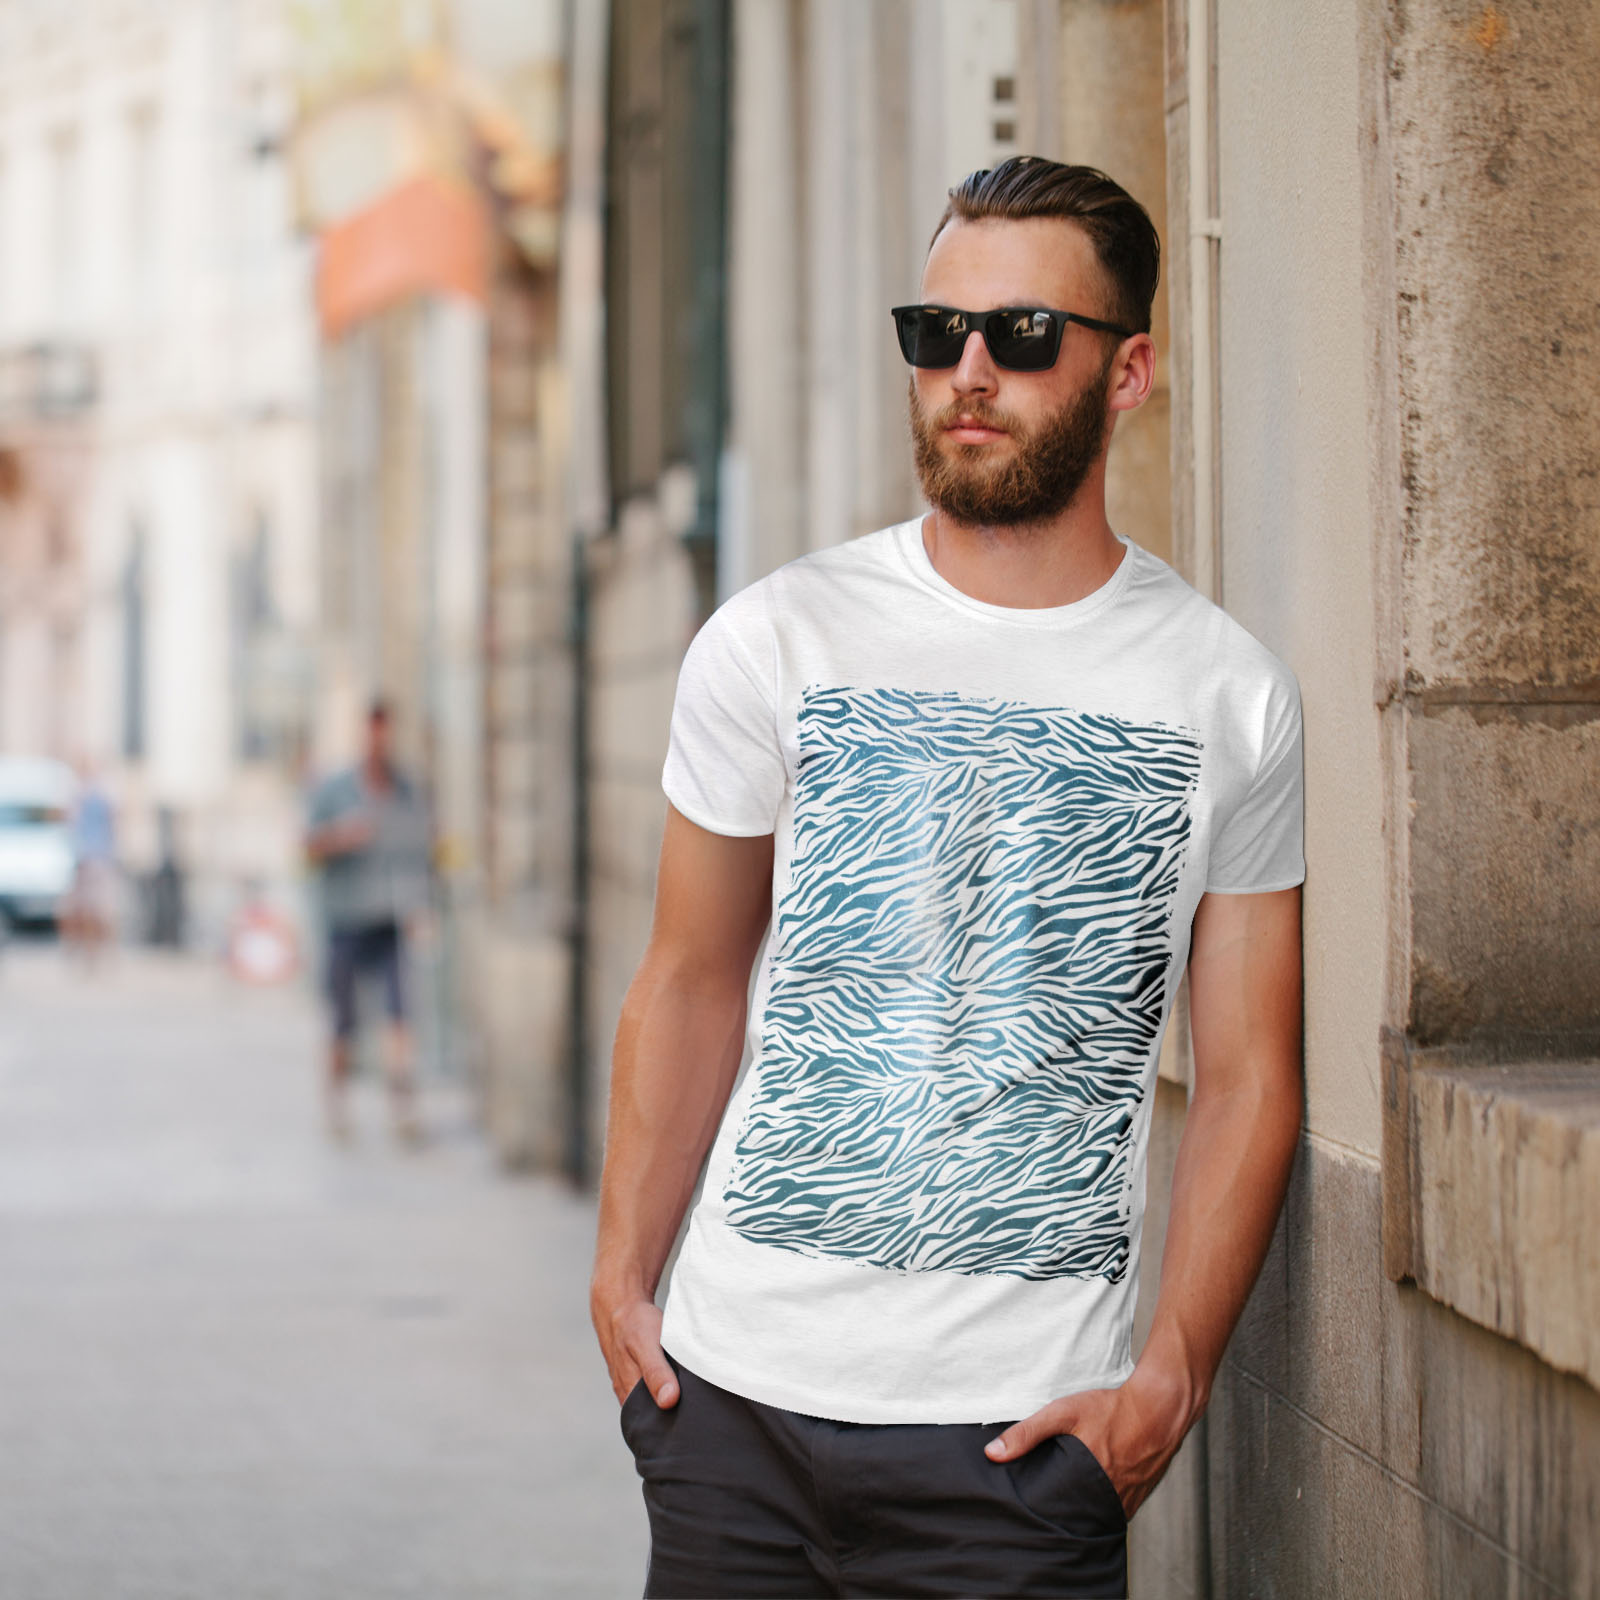 Wellcoda-Fashion-Pattern-Mens-T-shirt-Animal-Graphic-Design-Printed-Tee miniatuur 11